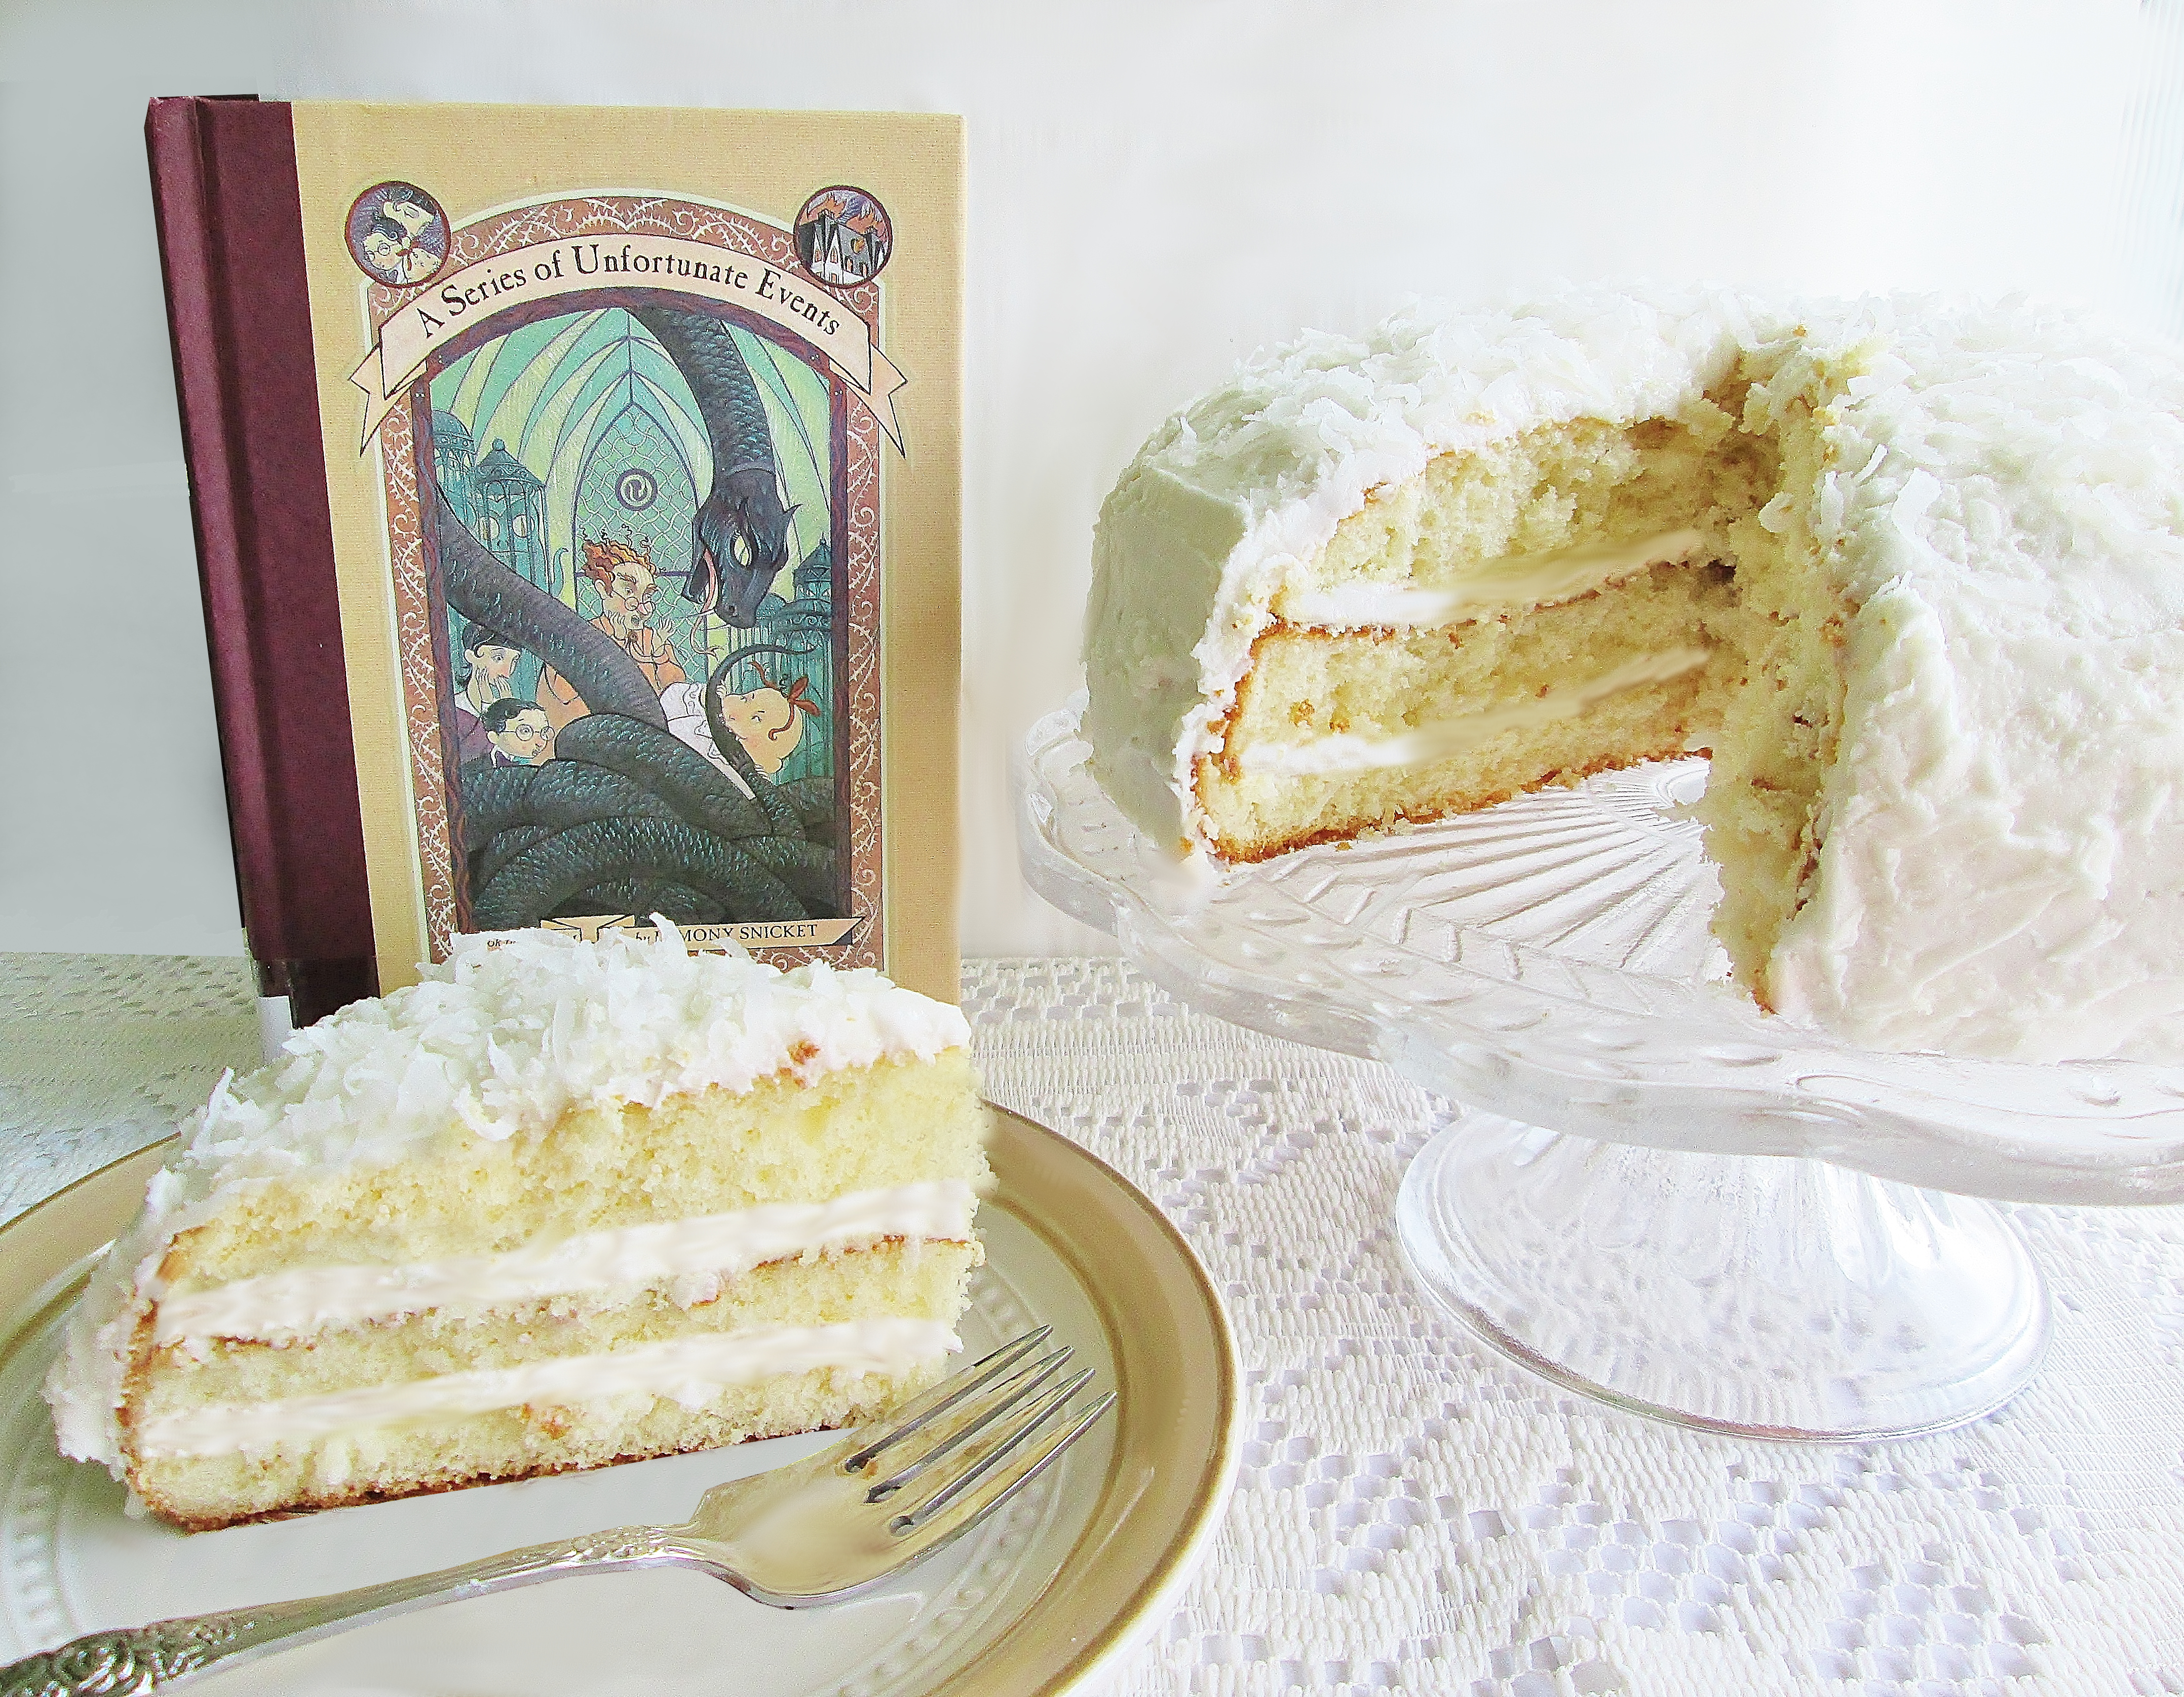 series-of-unfortunate-events-coconut-cake-d-5298